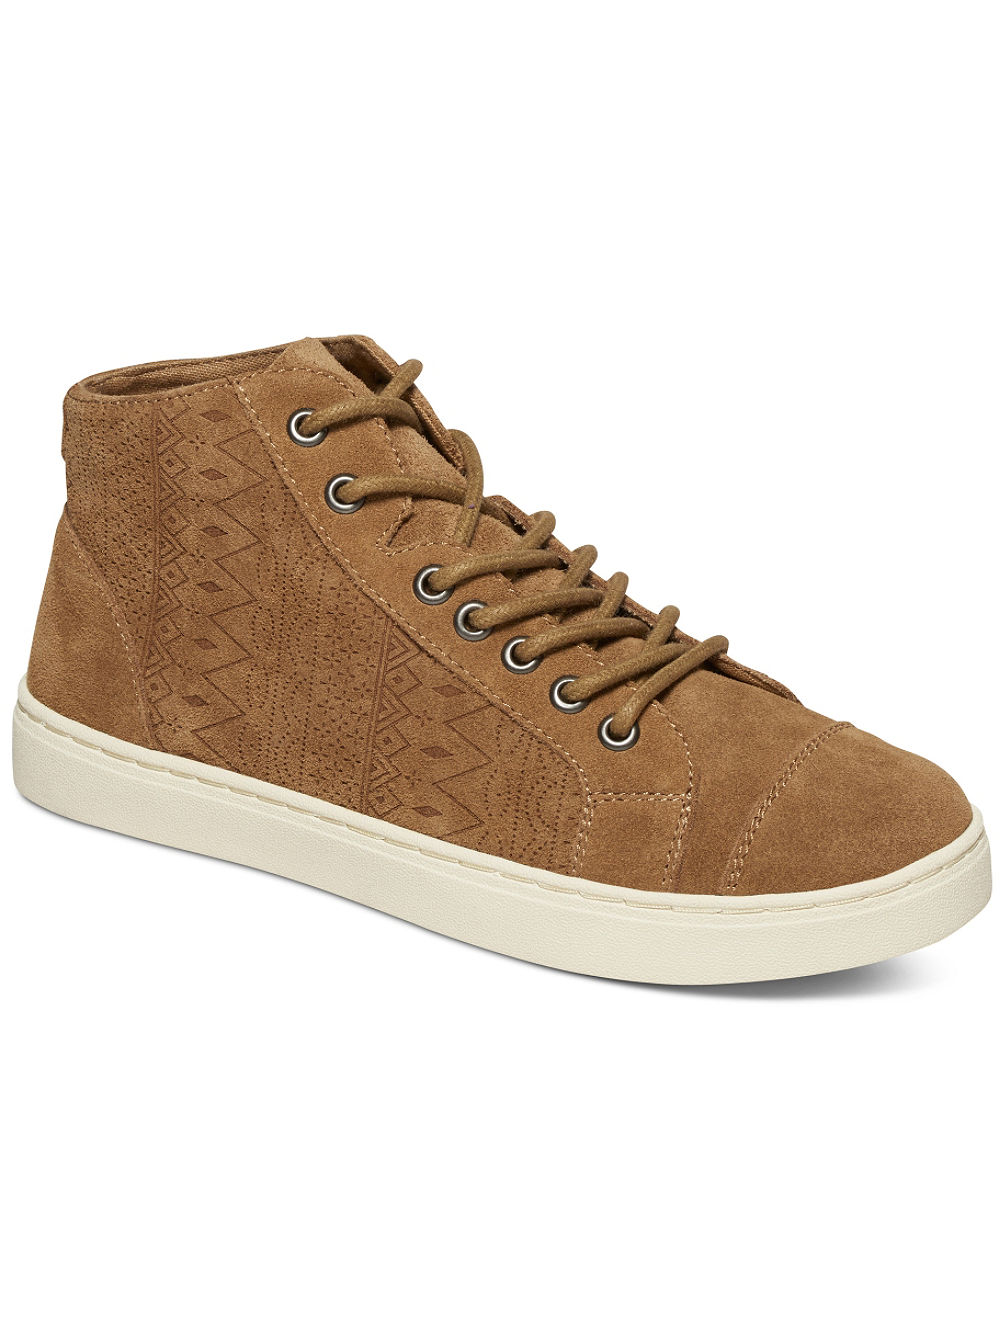 buy melbourne sneakers at blue tomato